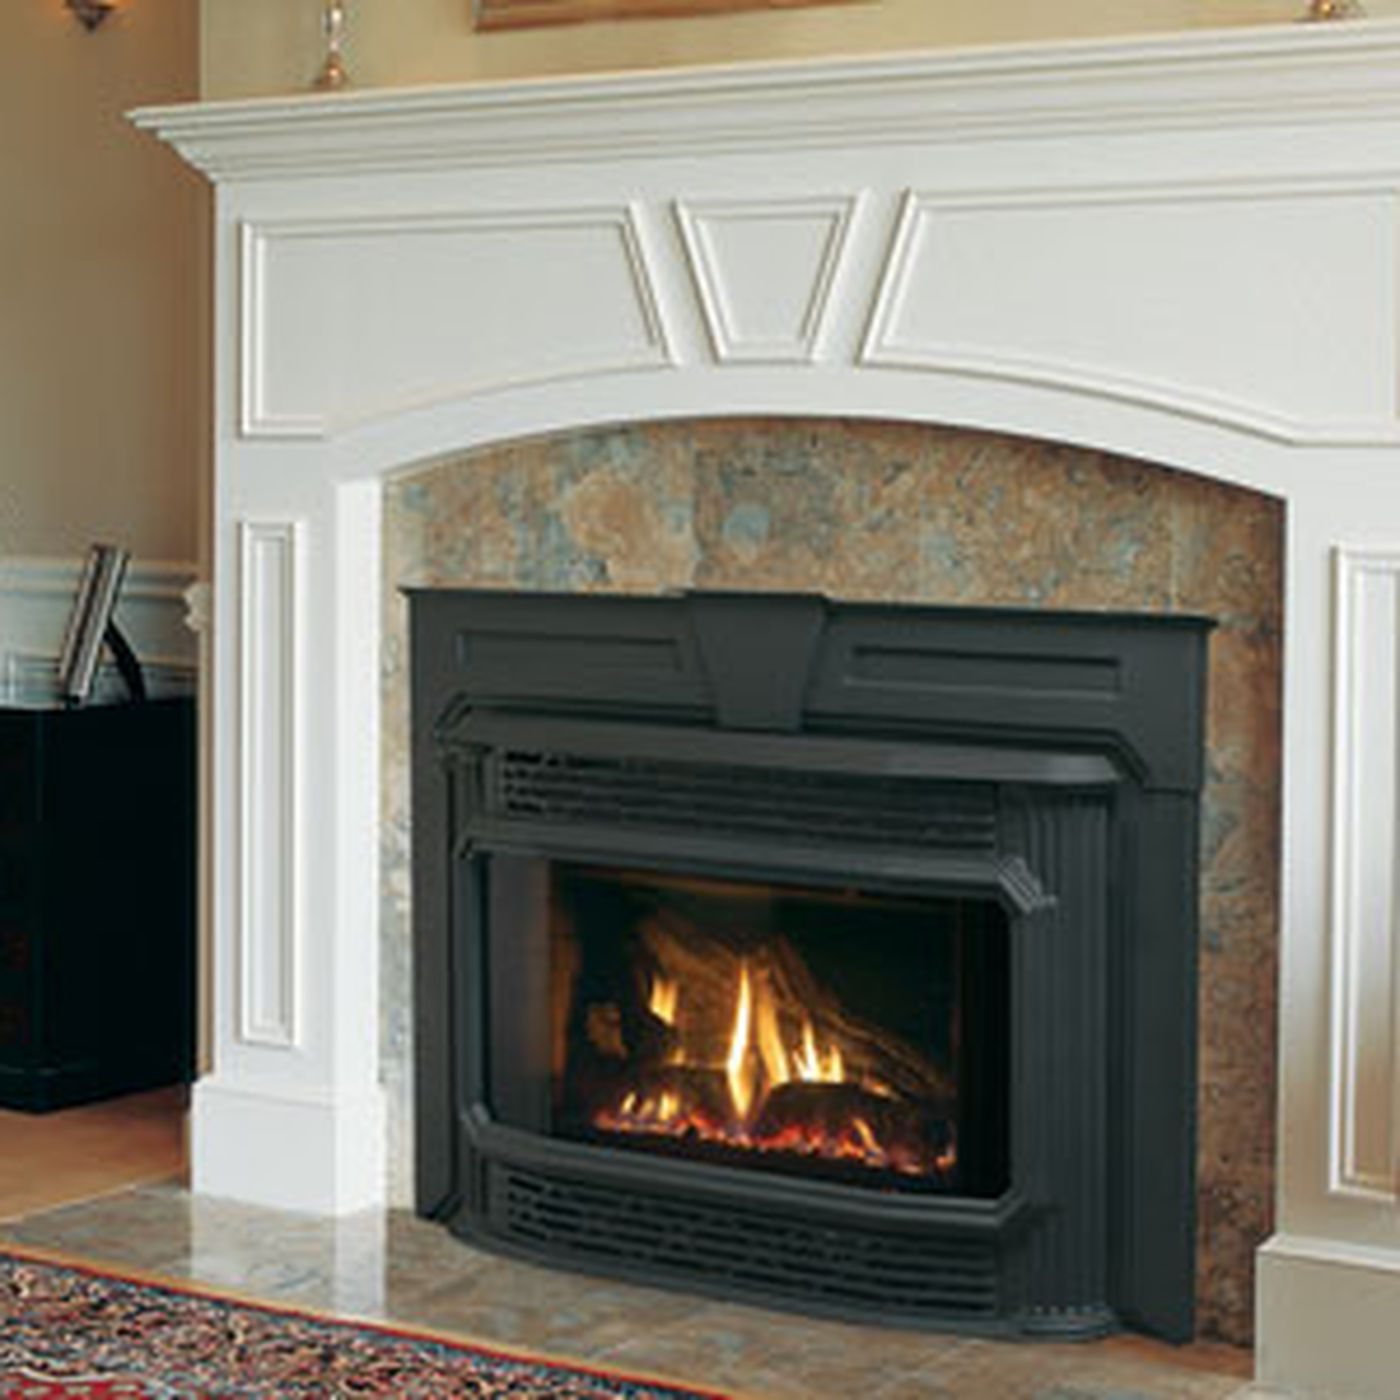 Upgrade And Save Energy With Fireplace Inserts This Old House